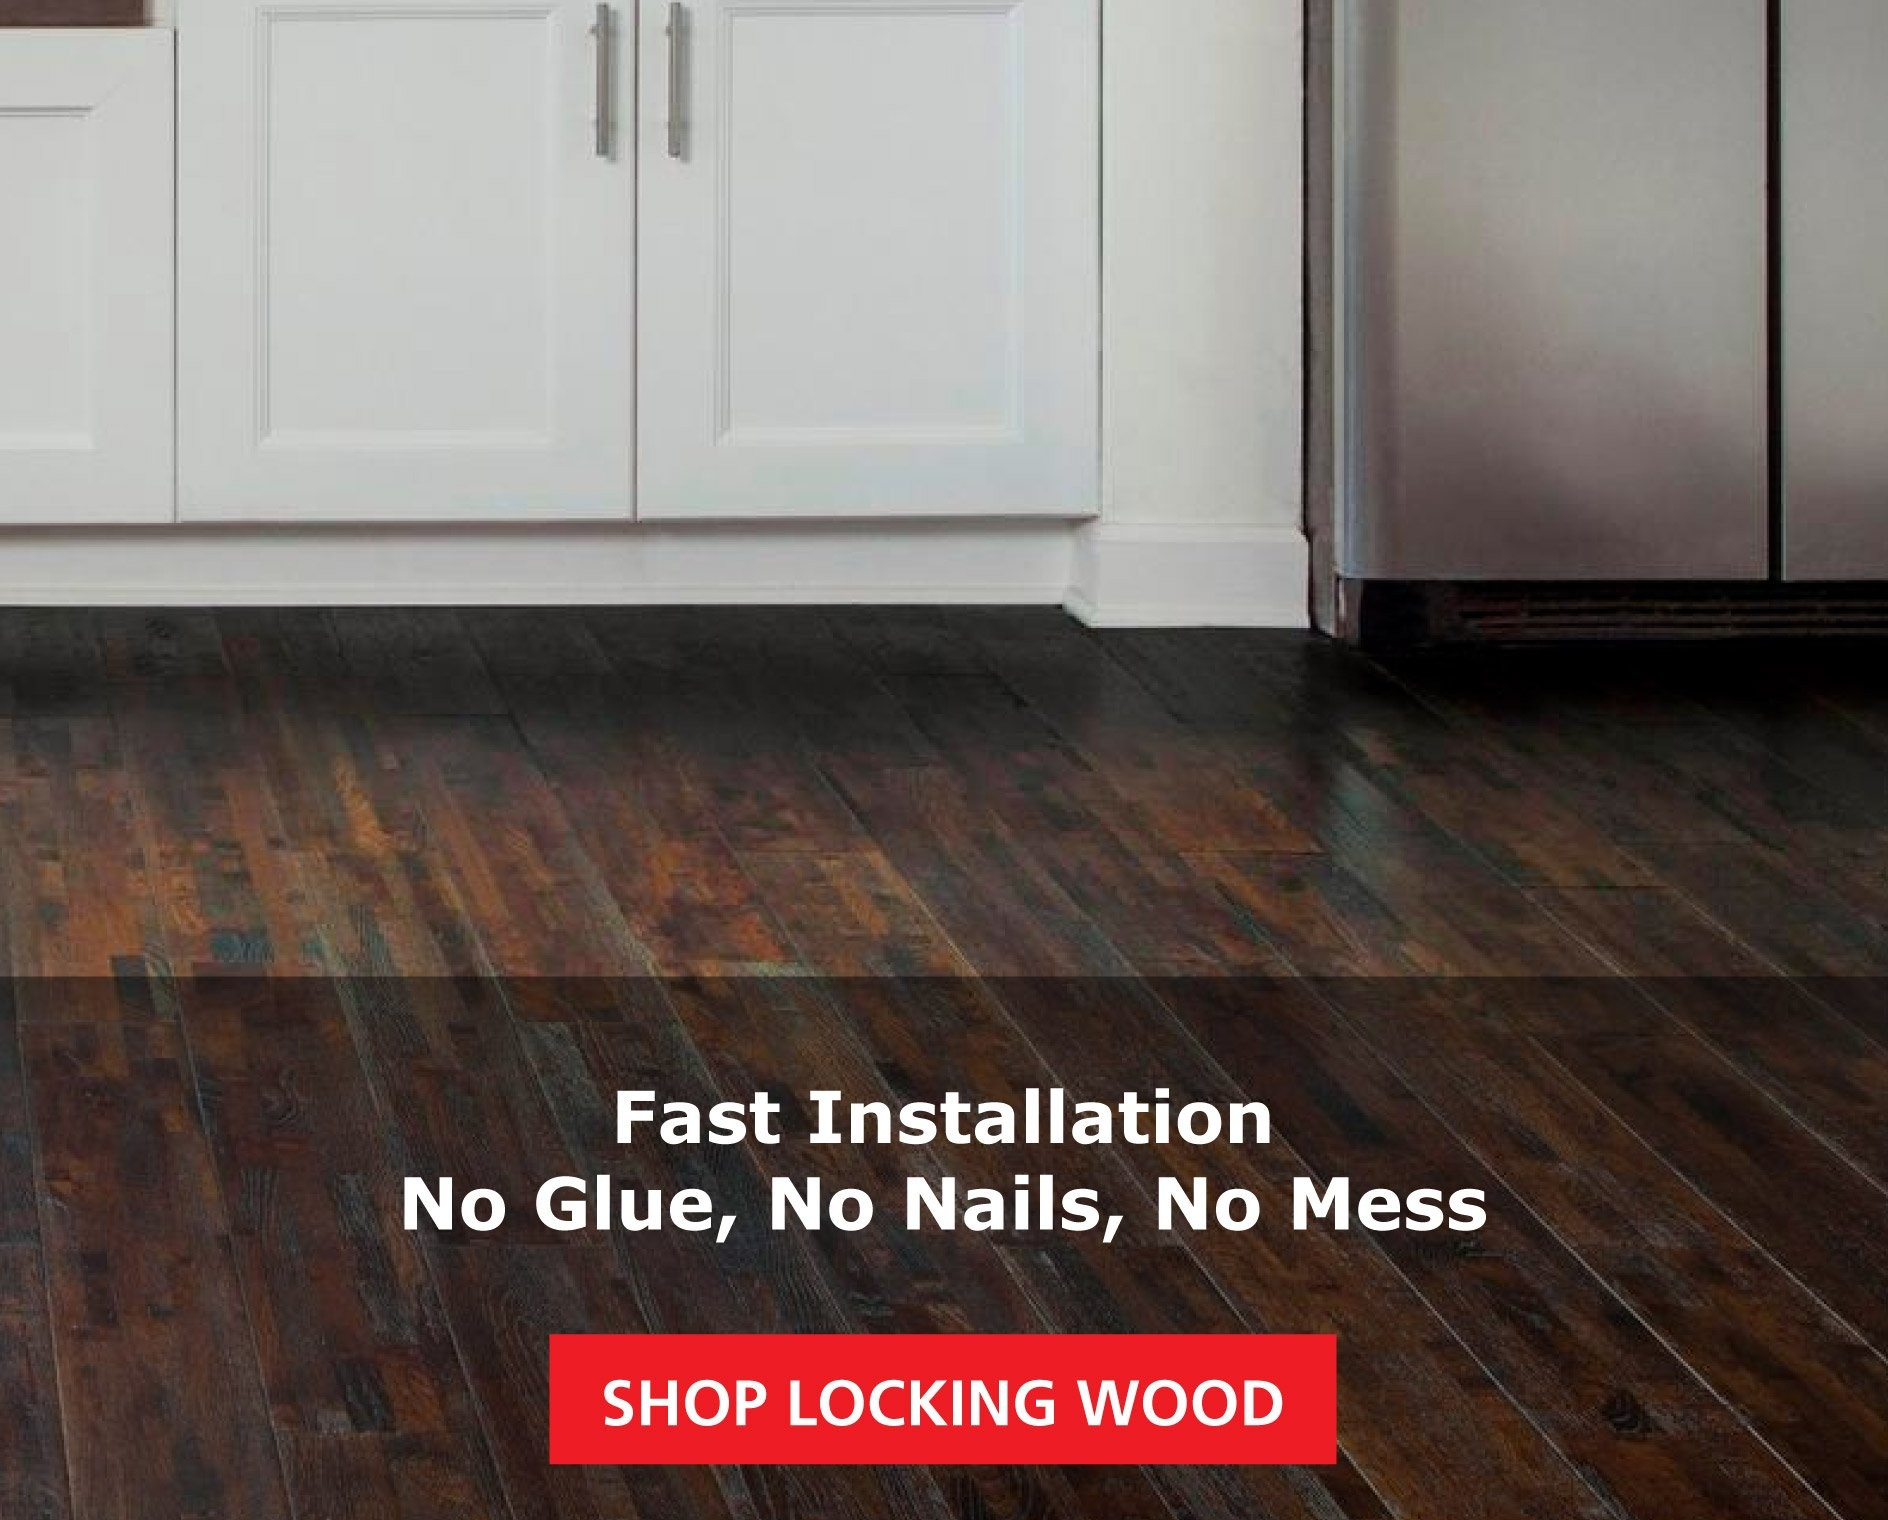 Shop Locking Wood